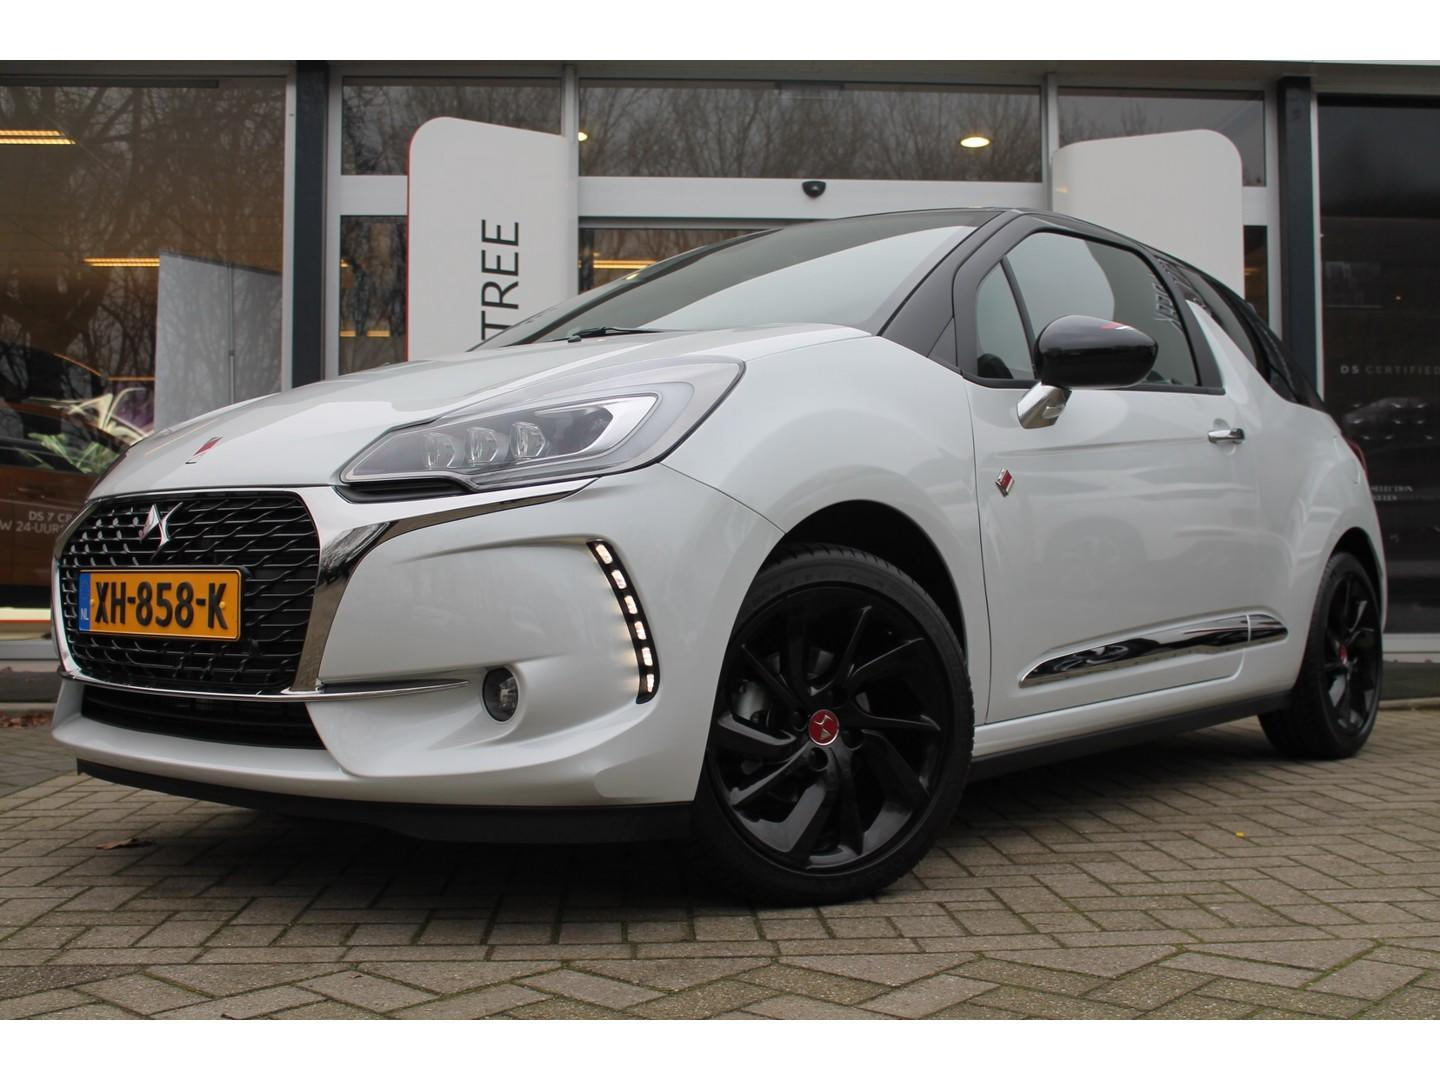 Ds Ds 3 Turbo 110pk automaat